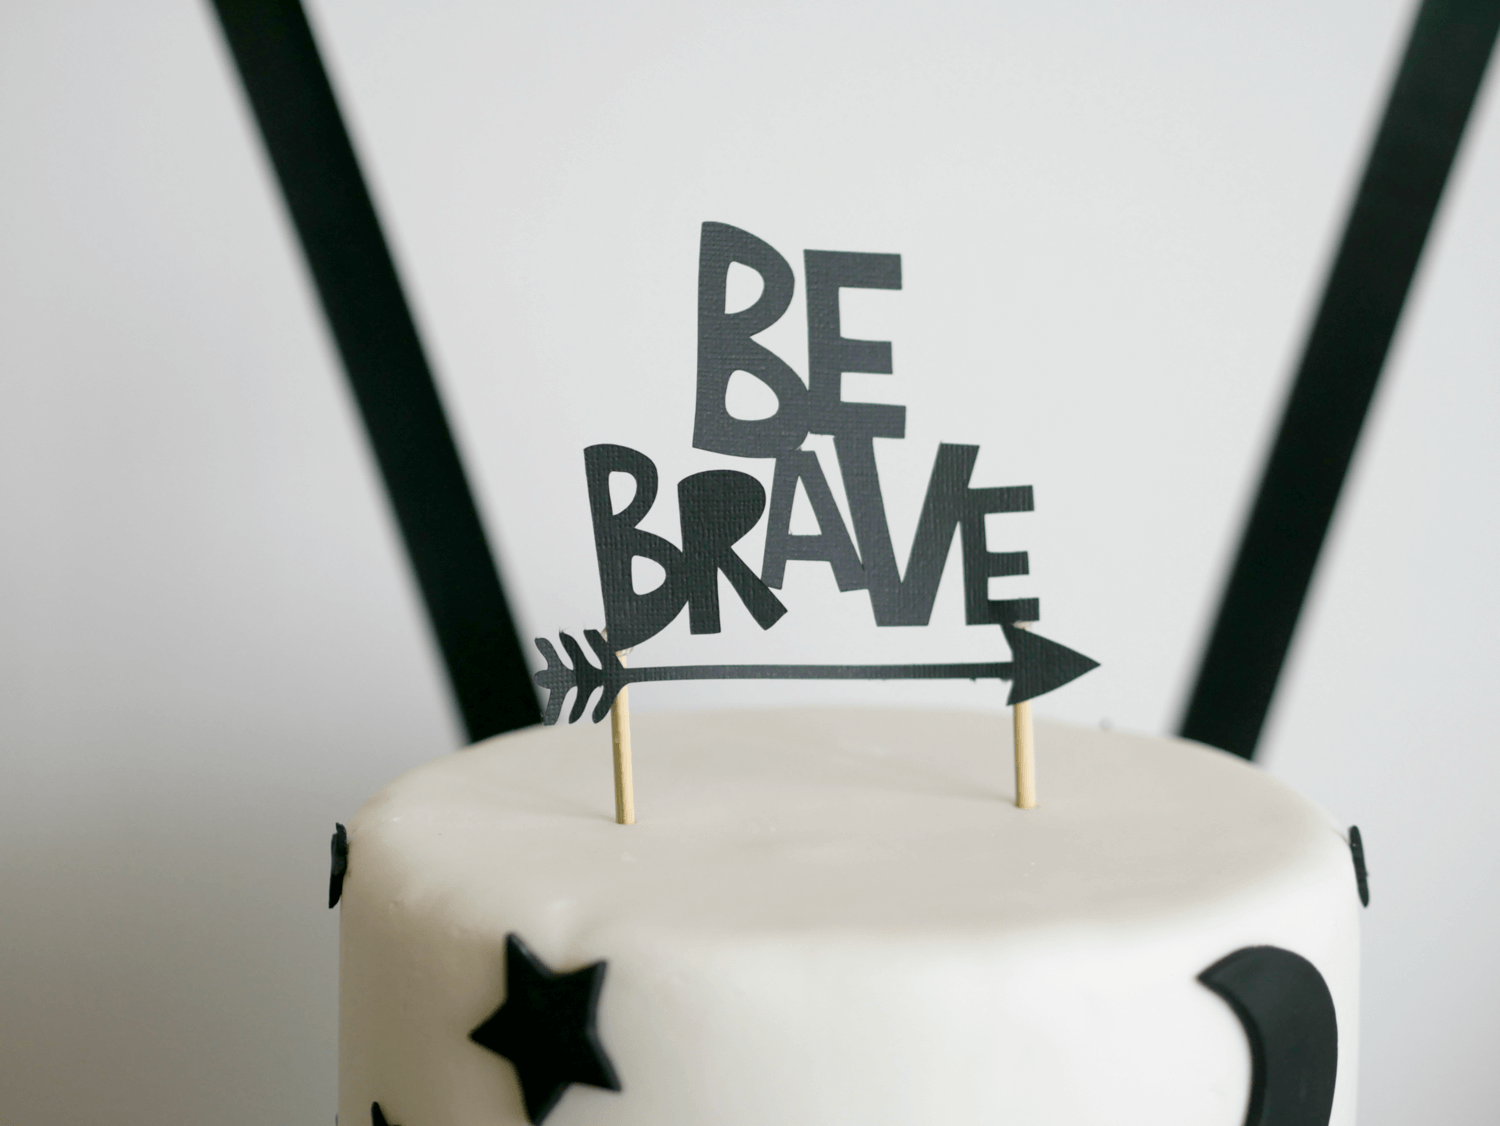 Be Brave Cake topper idea / Tribal cake topper idea / camping topper idea / Be Brave First Birthday party idea and decor / styled by Carolina from MINT Event Design / www.minteventdesign.com